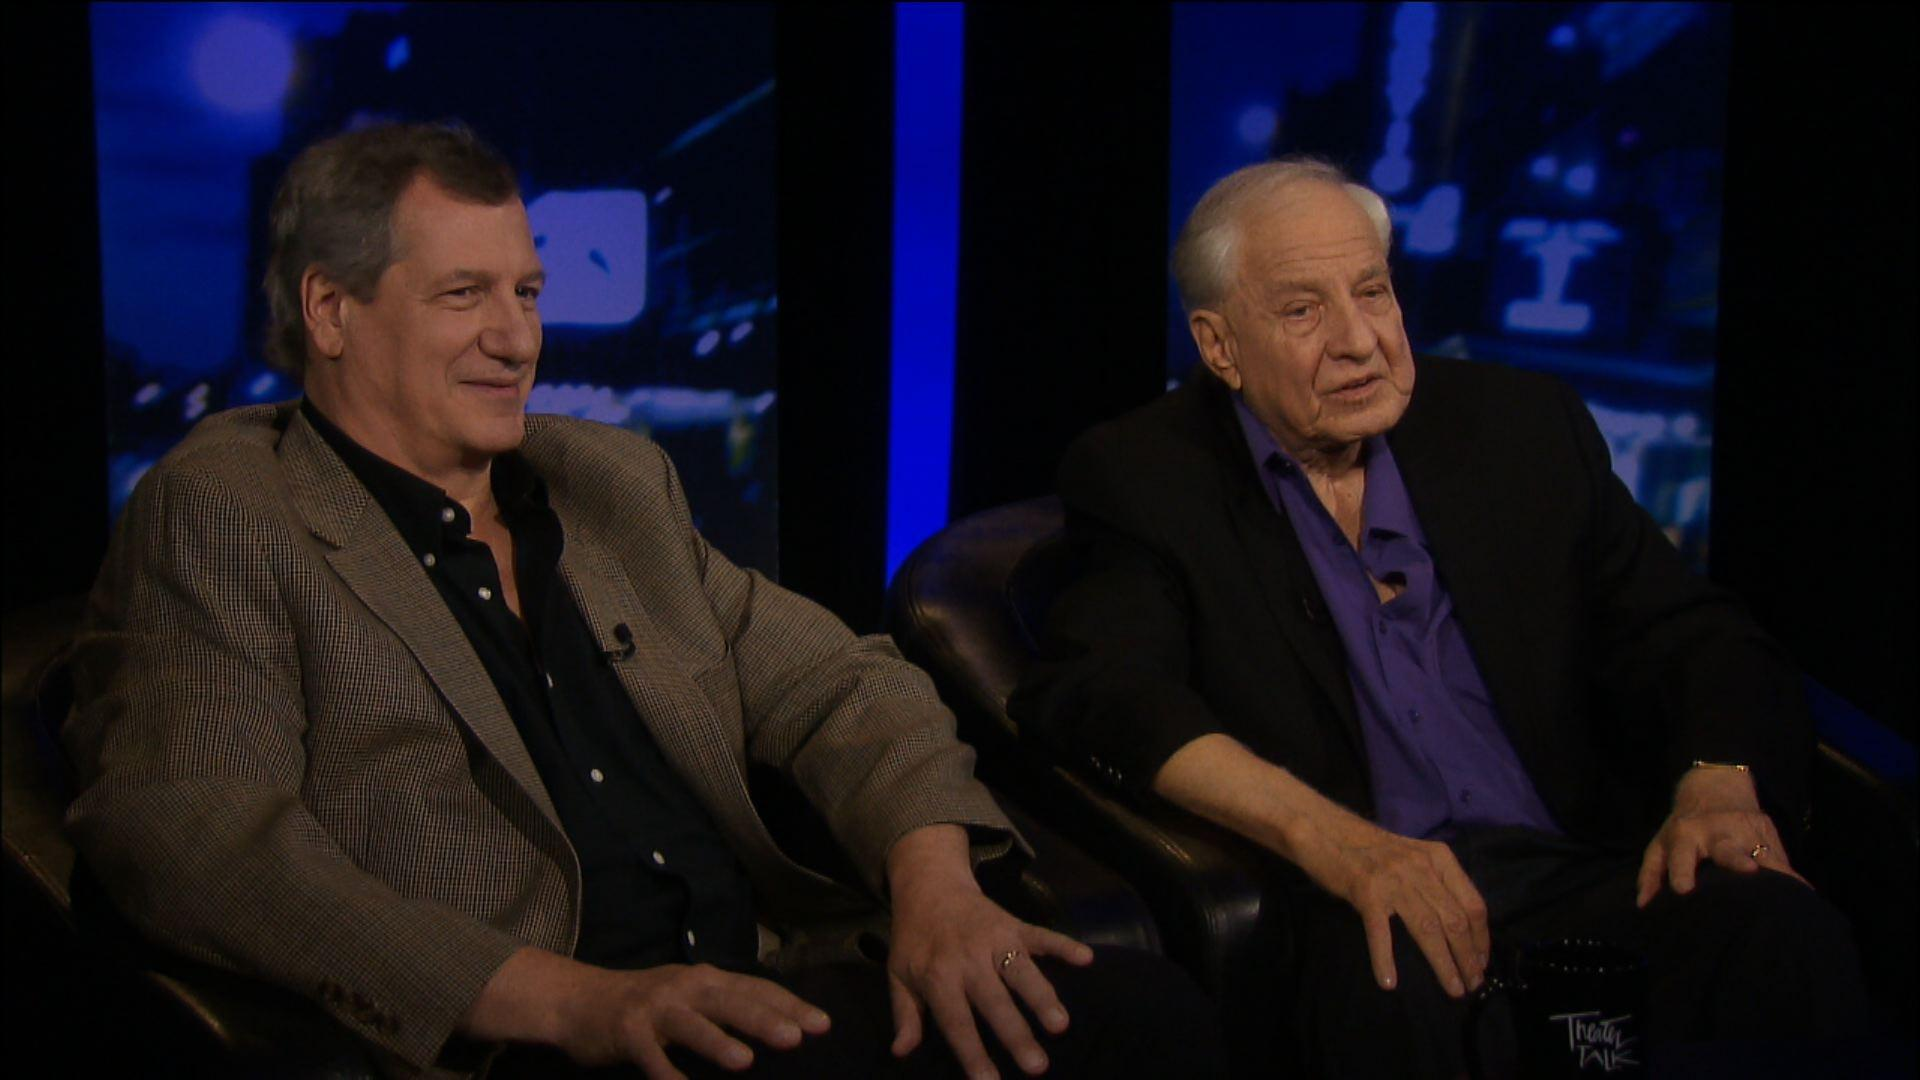 Remembering Garry Marshall: Marshall with Mike Bencivenga